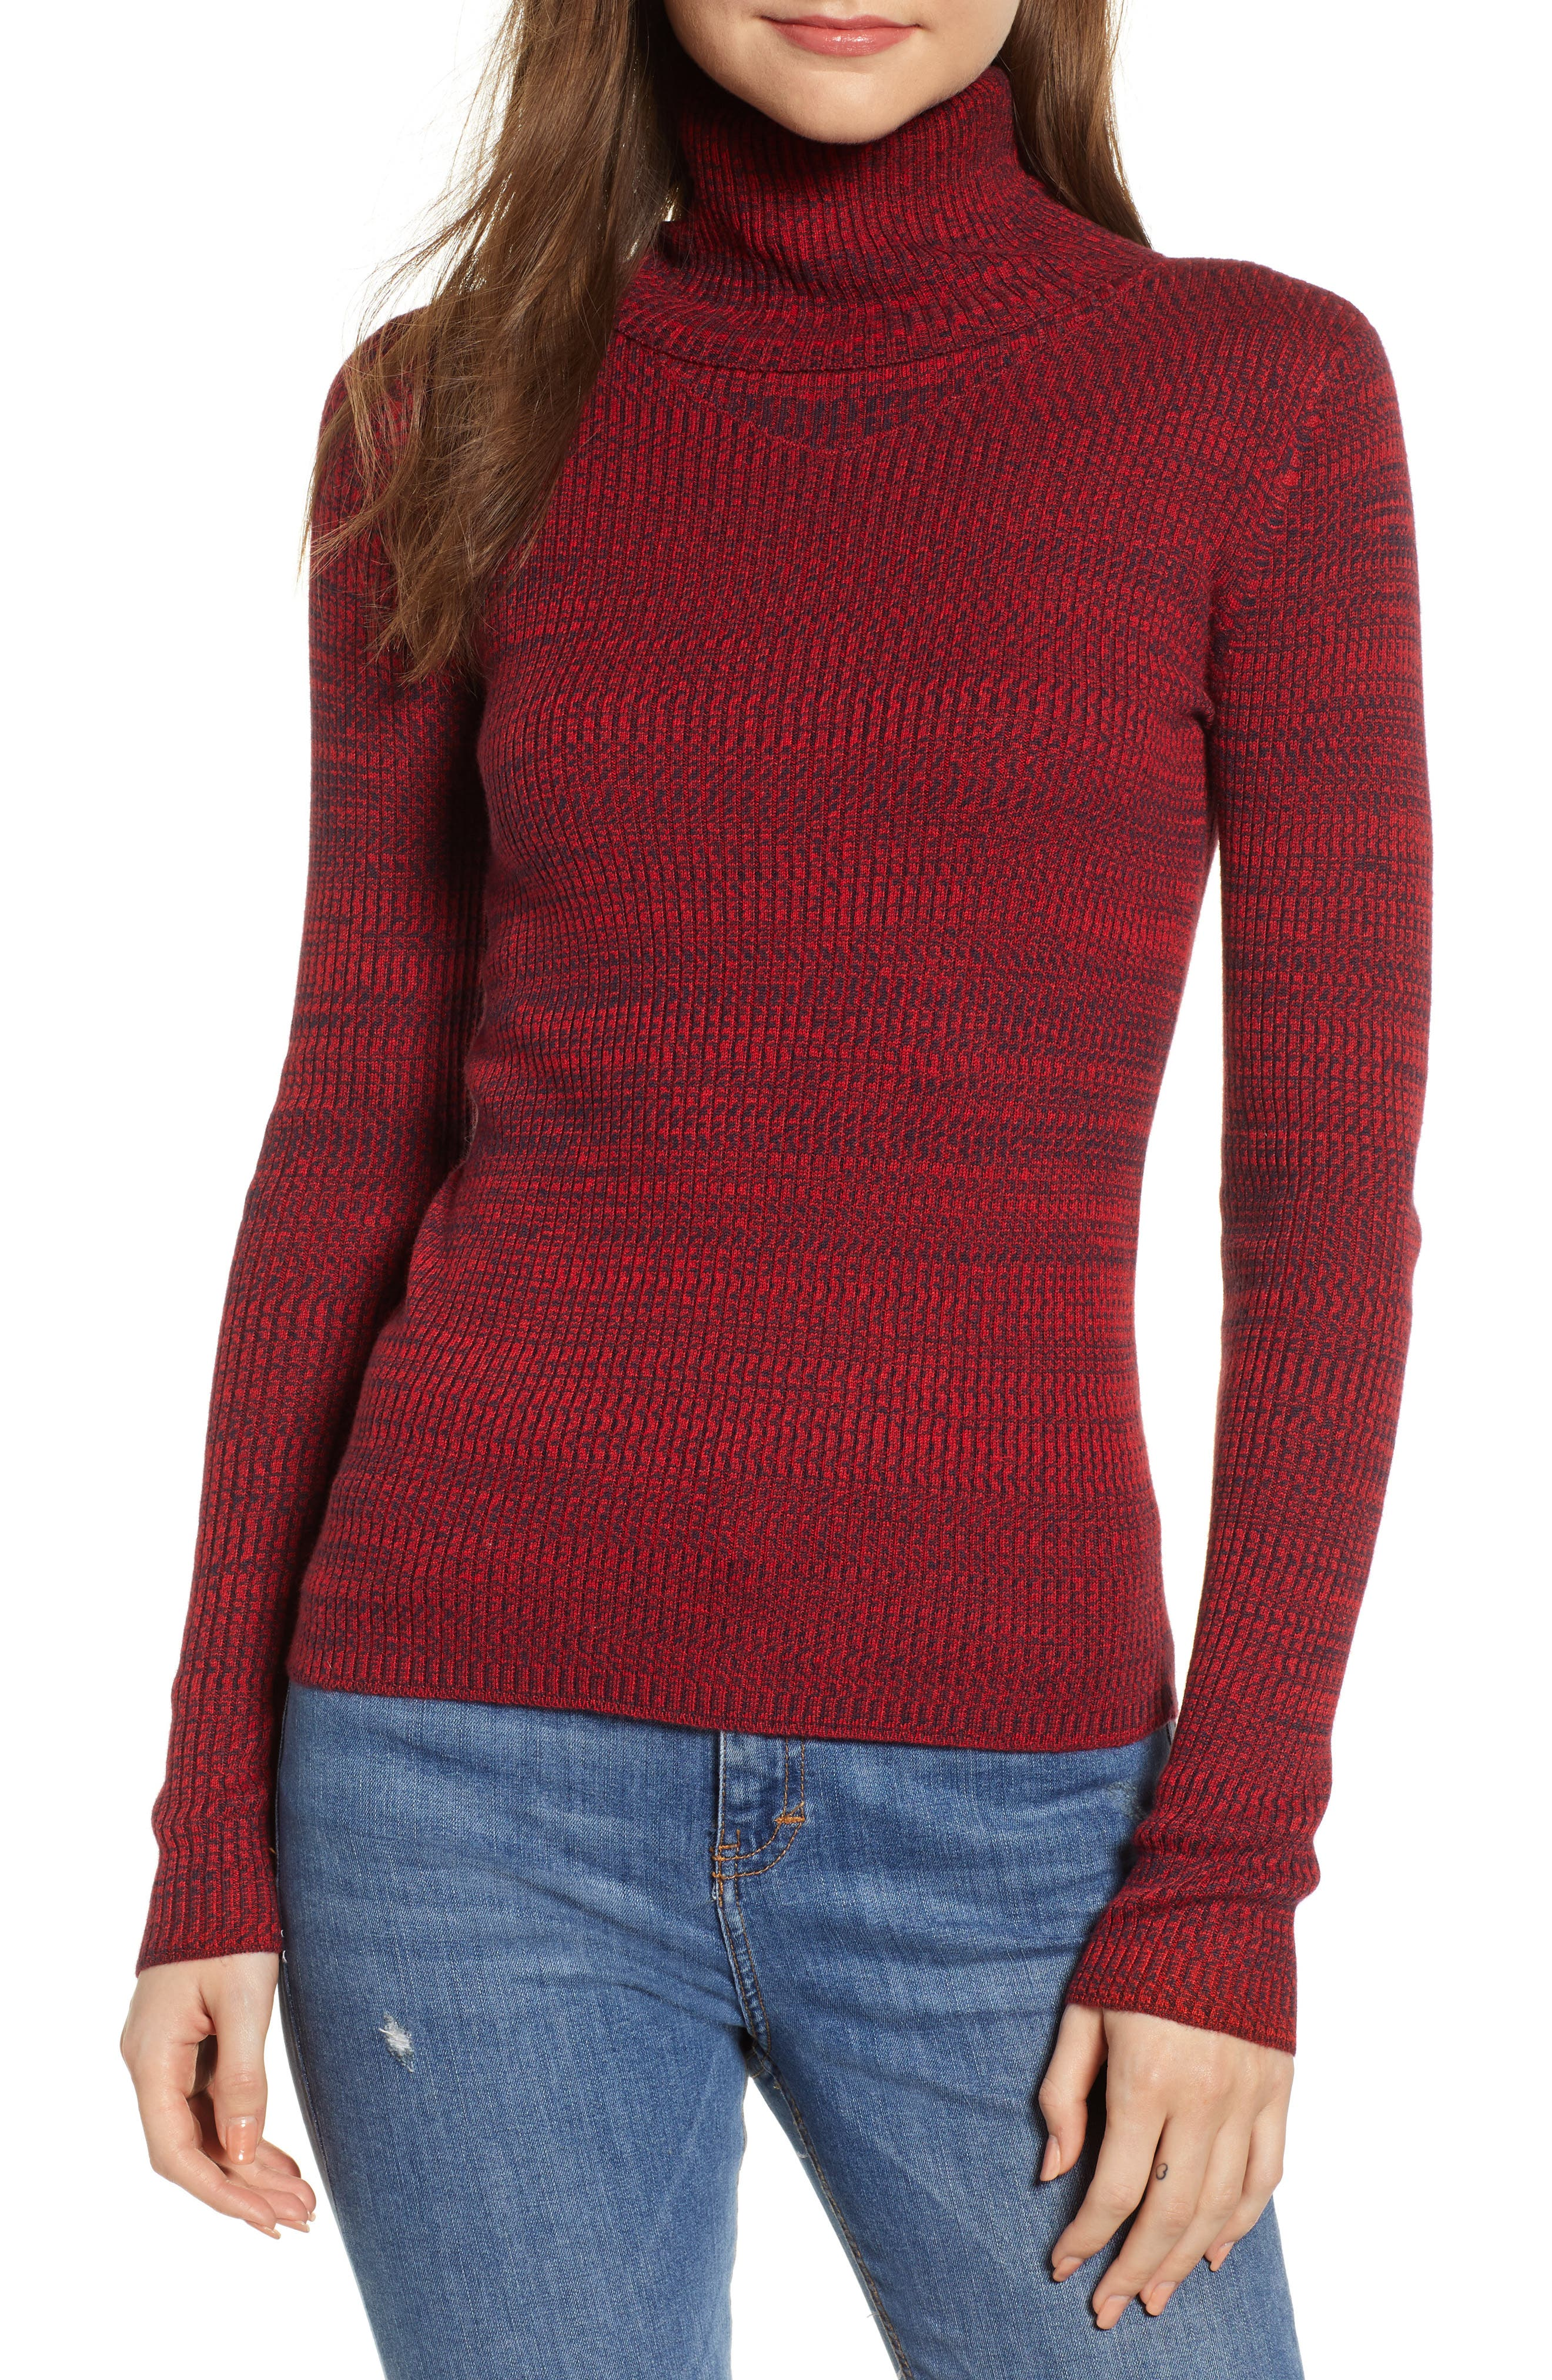 Space Dye Turtleneck Sweater,                             Main thumbnail 1, color,                             RED CHINOISE COMBO